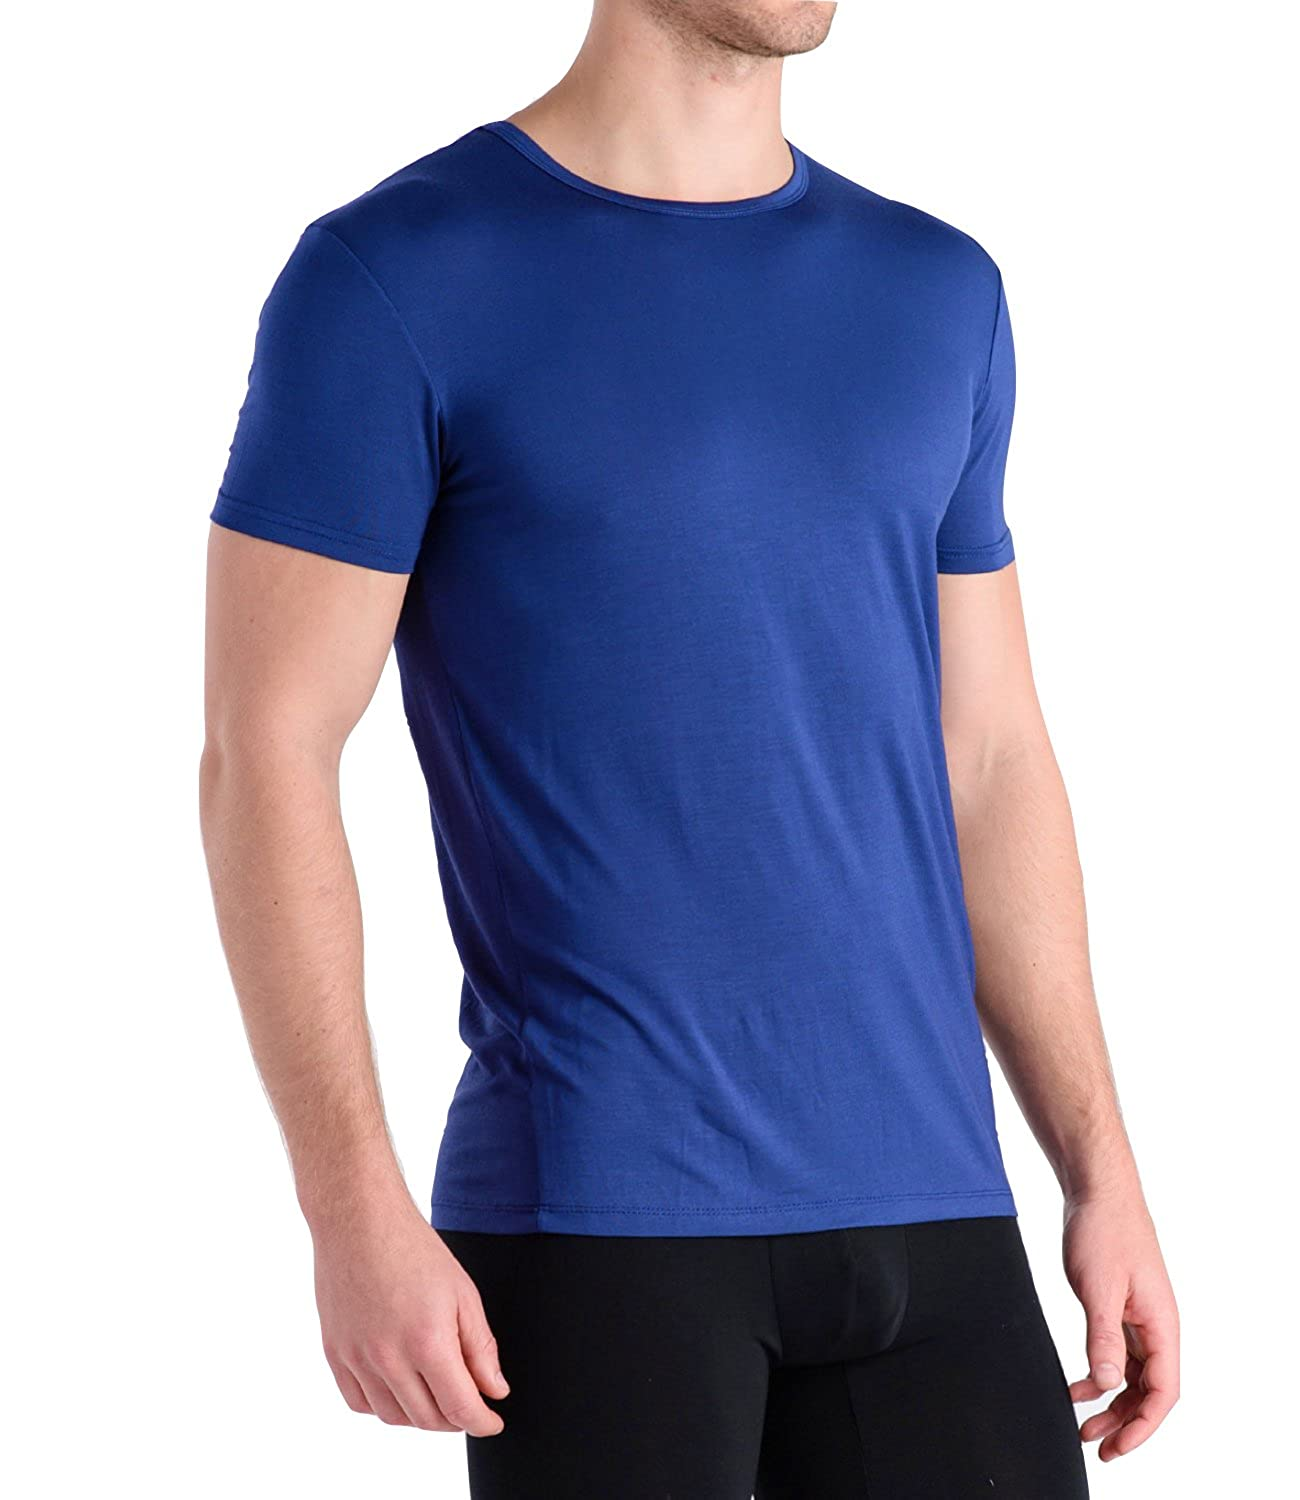 8698490f9f2363 TWICE AS SOFT AS COTTON  Breathable modal micro fiber undershirts for men  that are as smooth   soft as possible